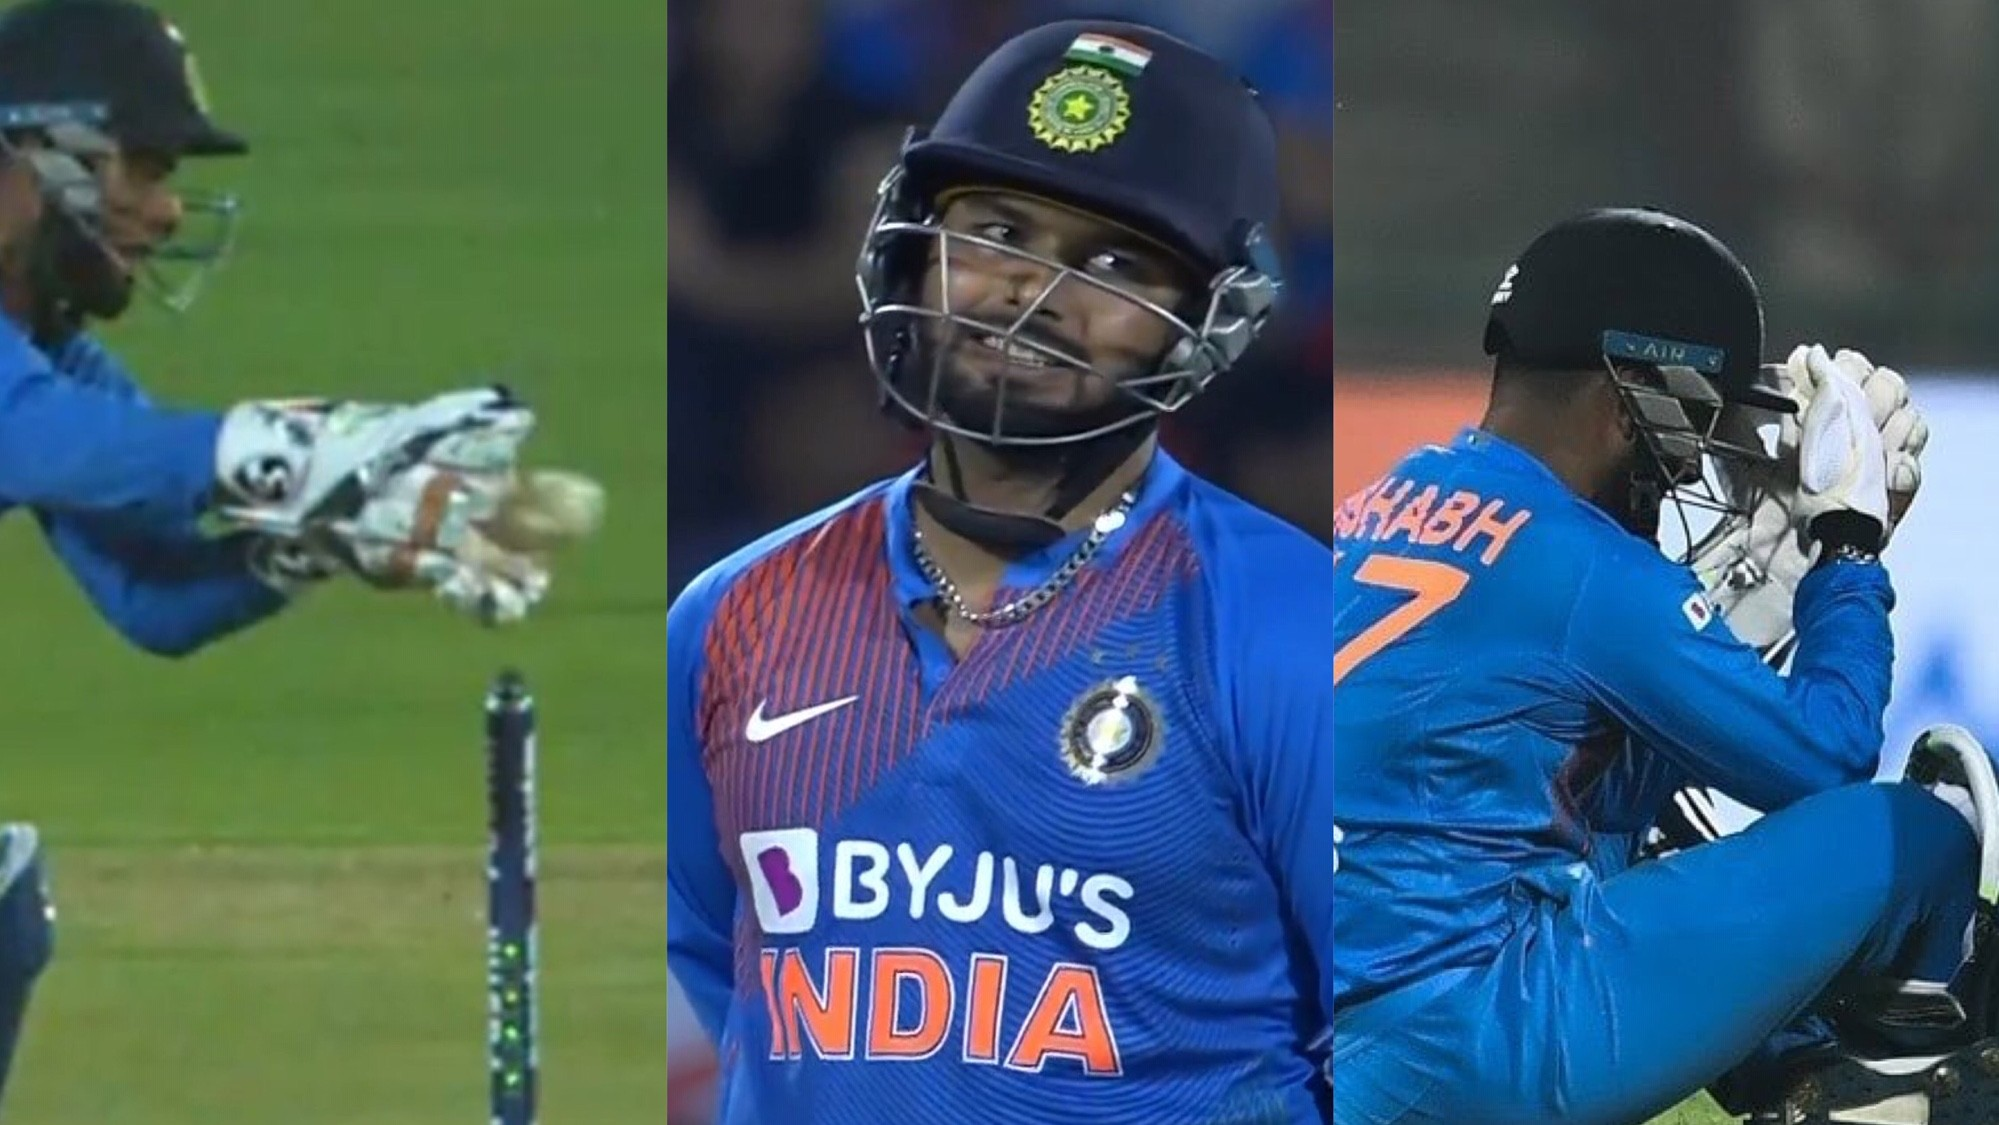 IND v BAN 2019: WATCH - Rishabh Pant messes up simple stumping of Liton Das